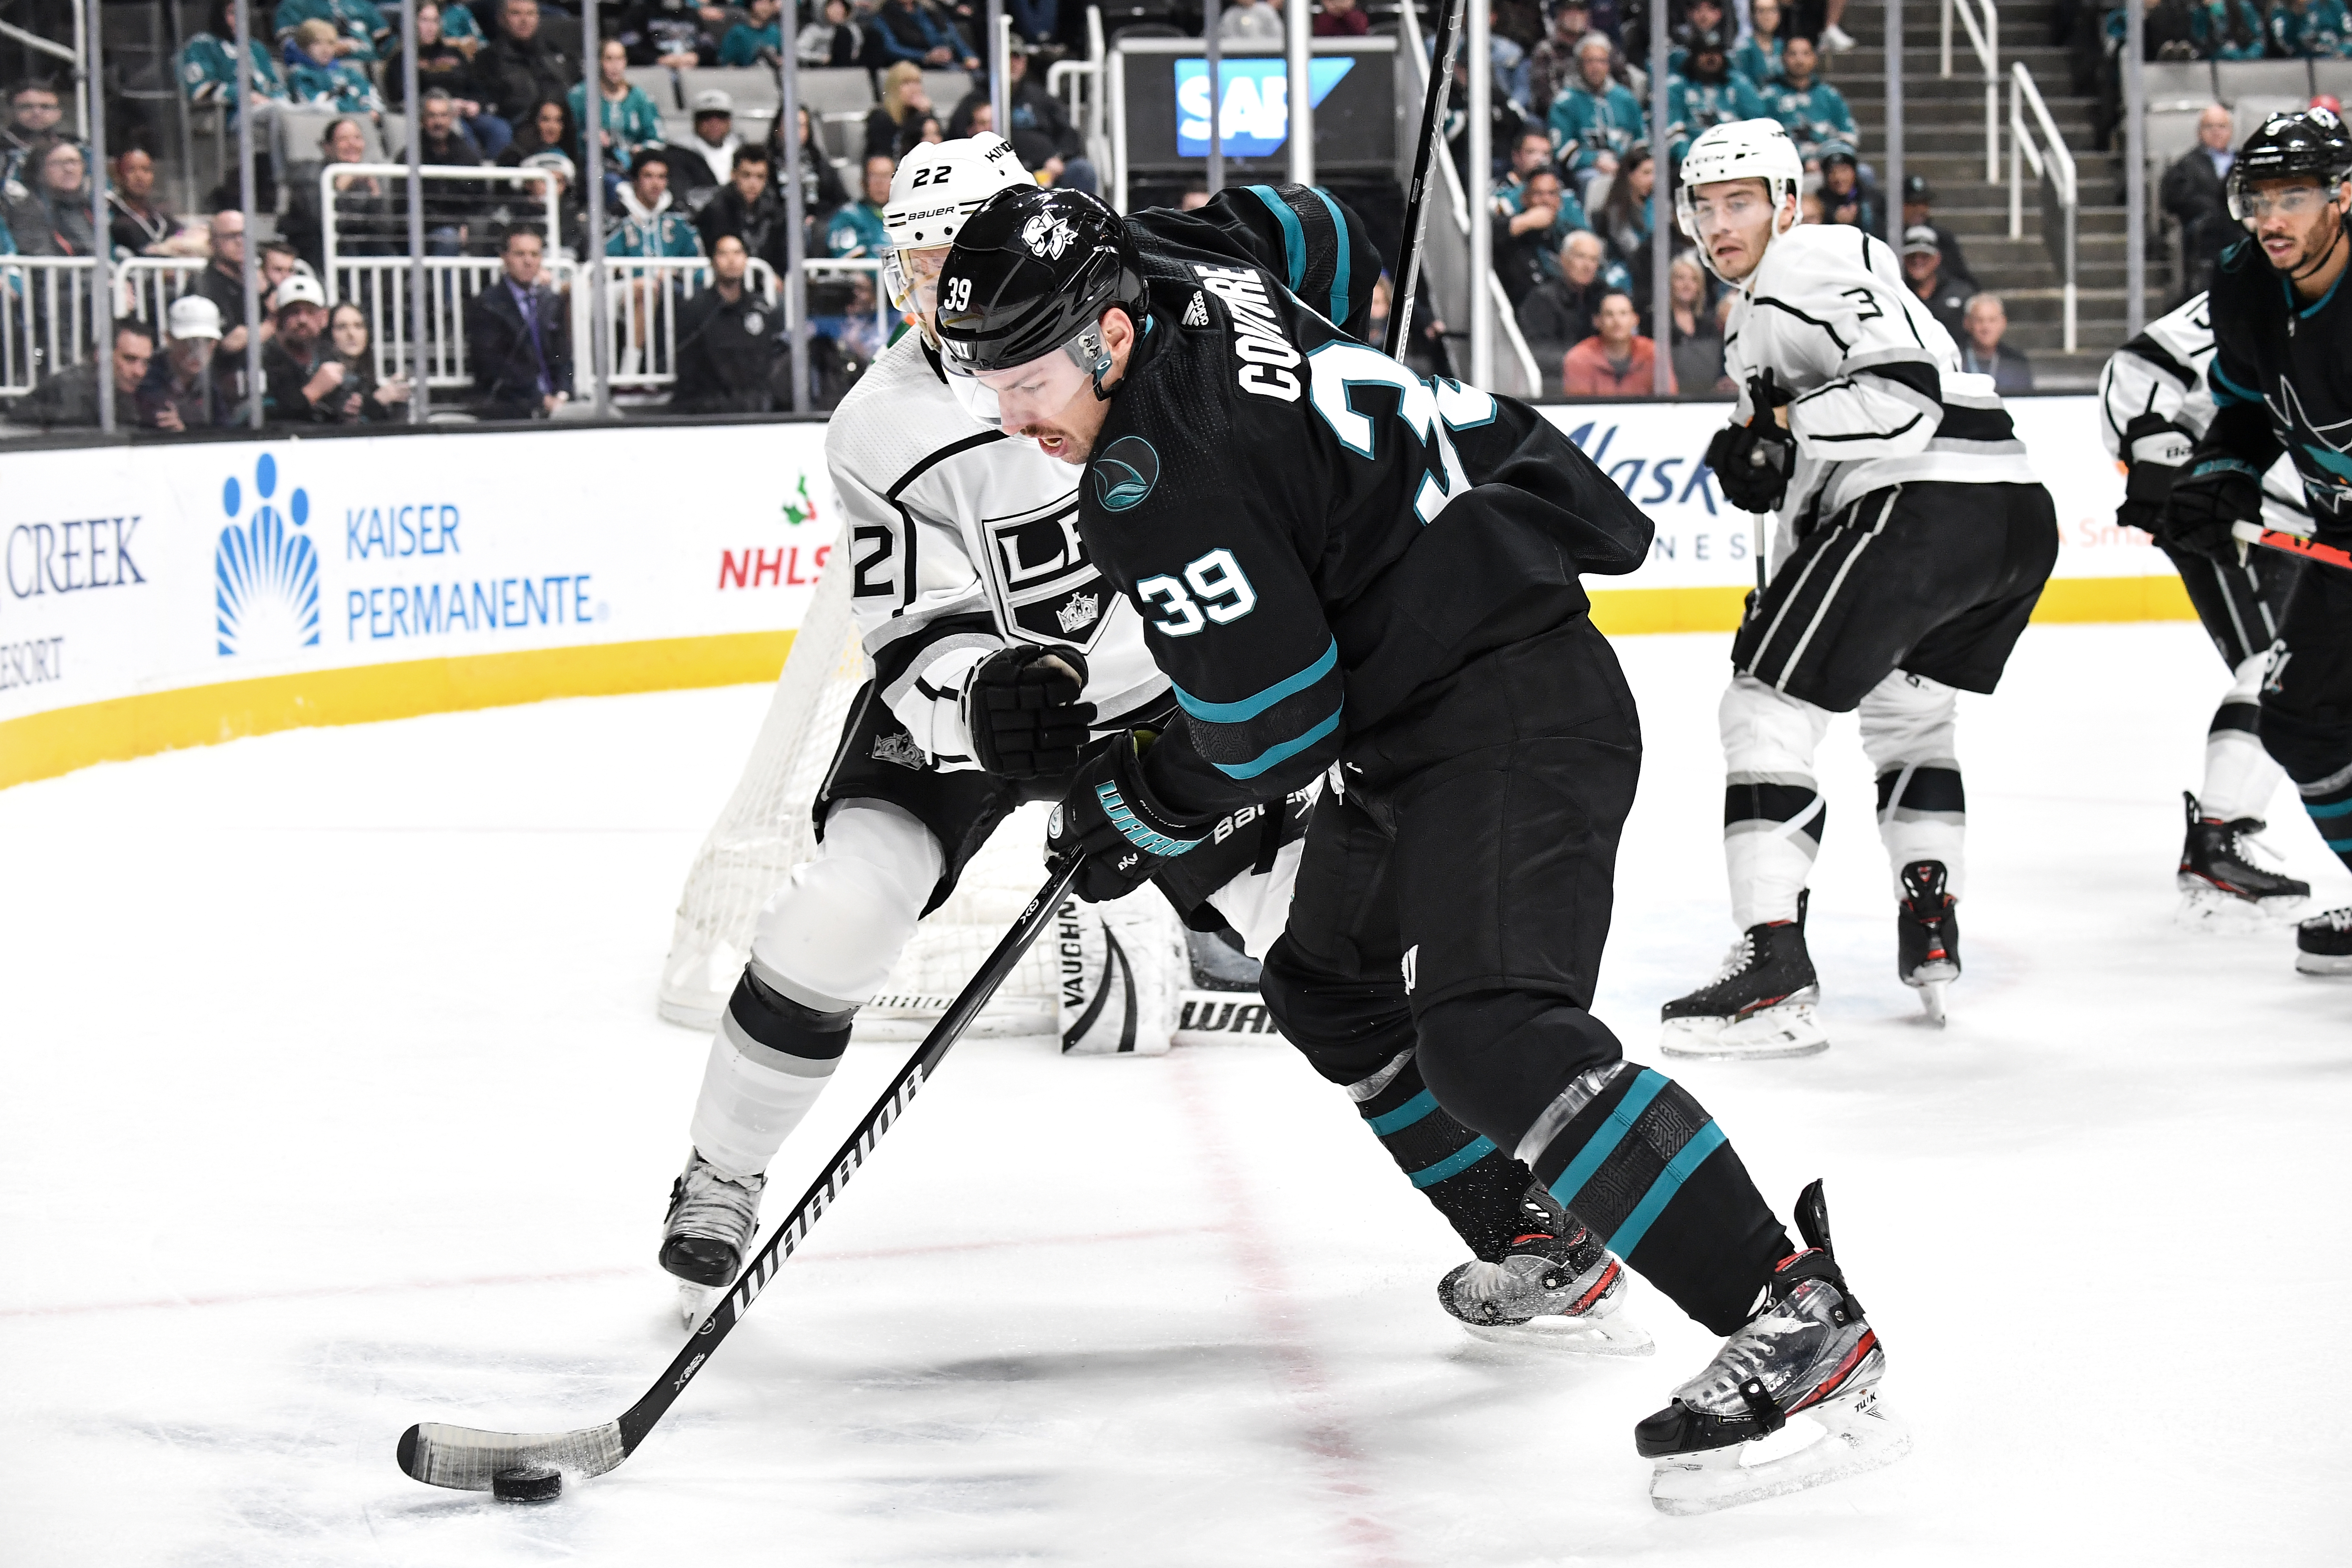 SAN JOSE, CA - NOVEMBER 29: Logan Couture #39 of the San Jose Sharks battles for the puck against Trevor Lewis #22 of the Los Angeles Kings at SAP Center on November 29, 2019 in San Jose, California.